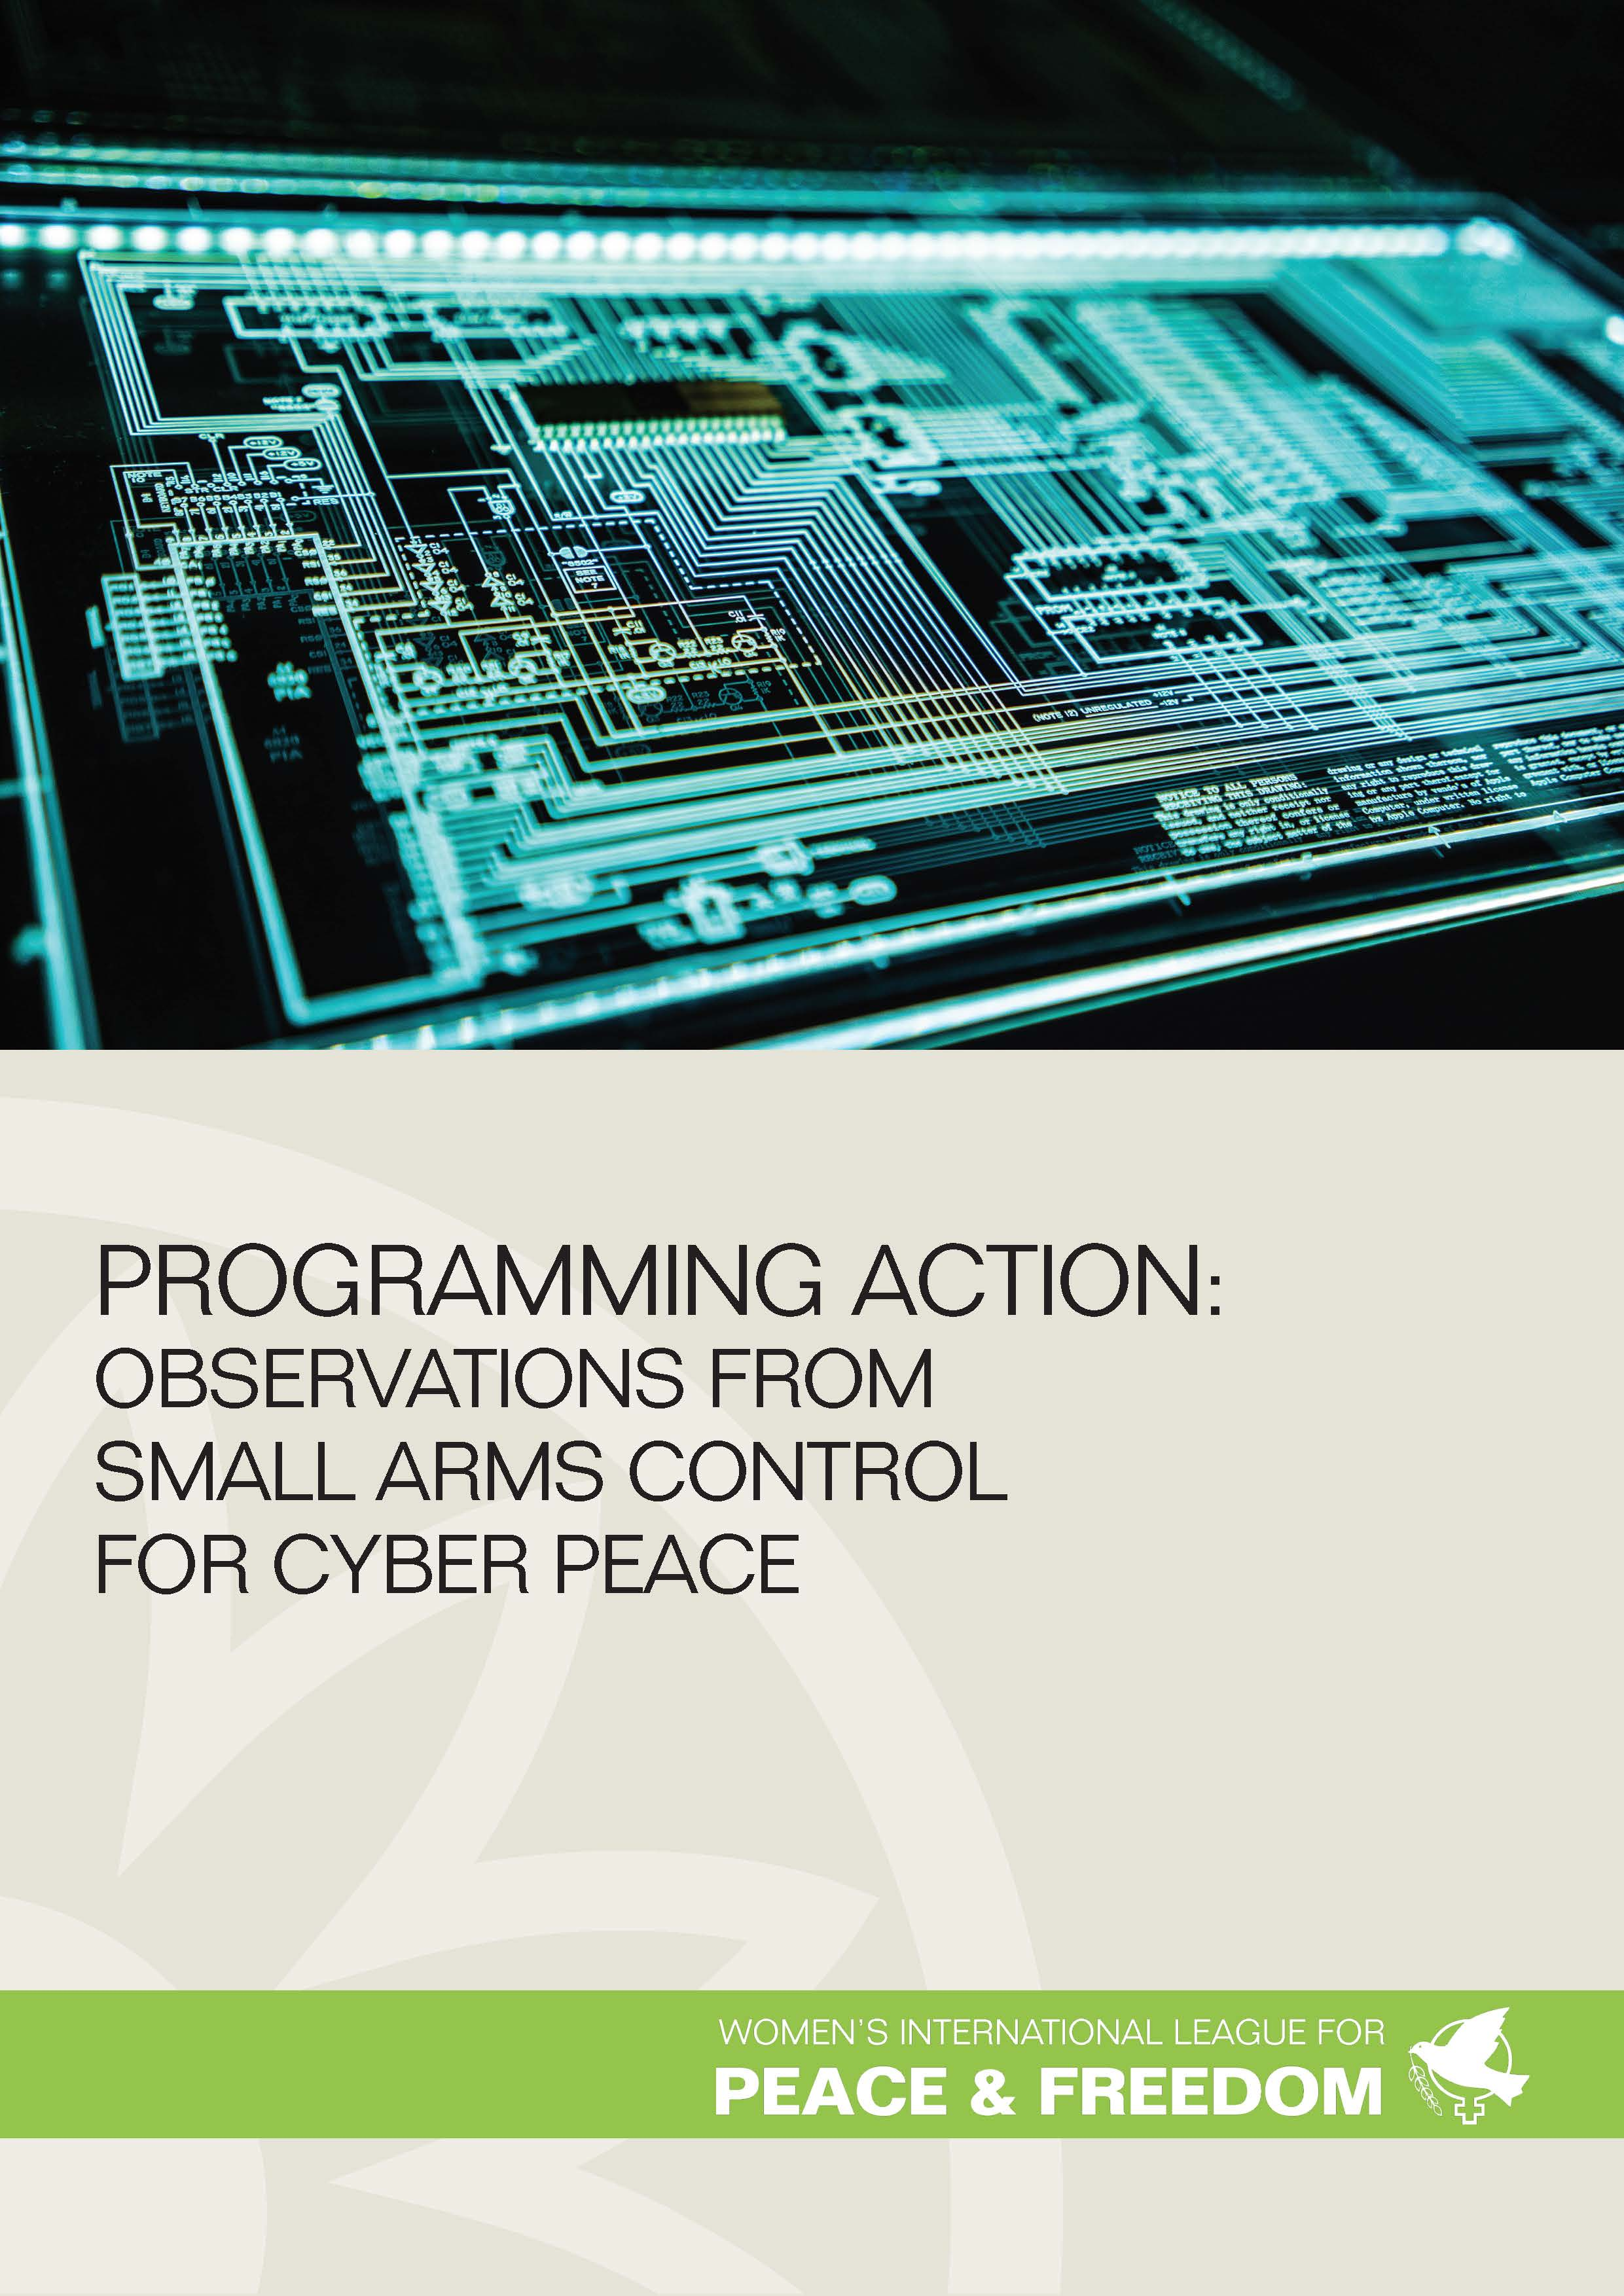 Programme action cover